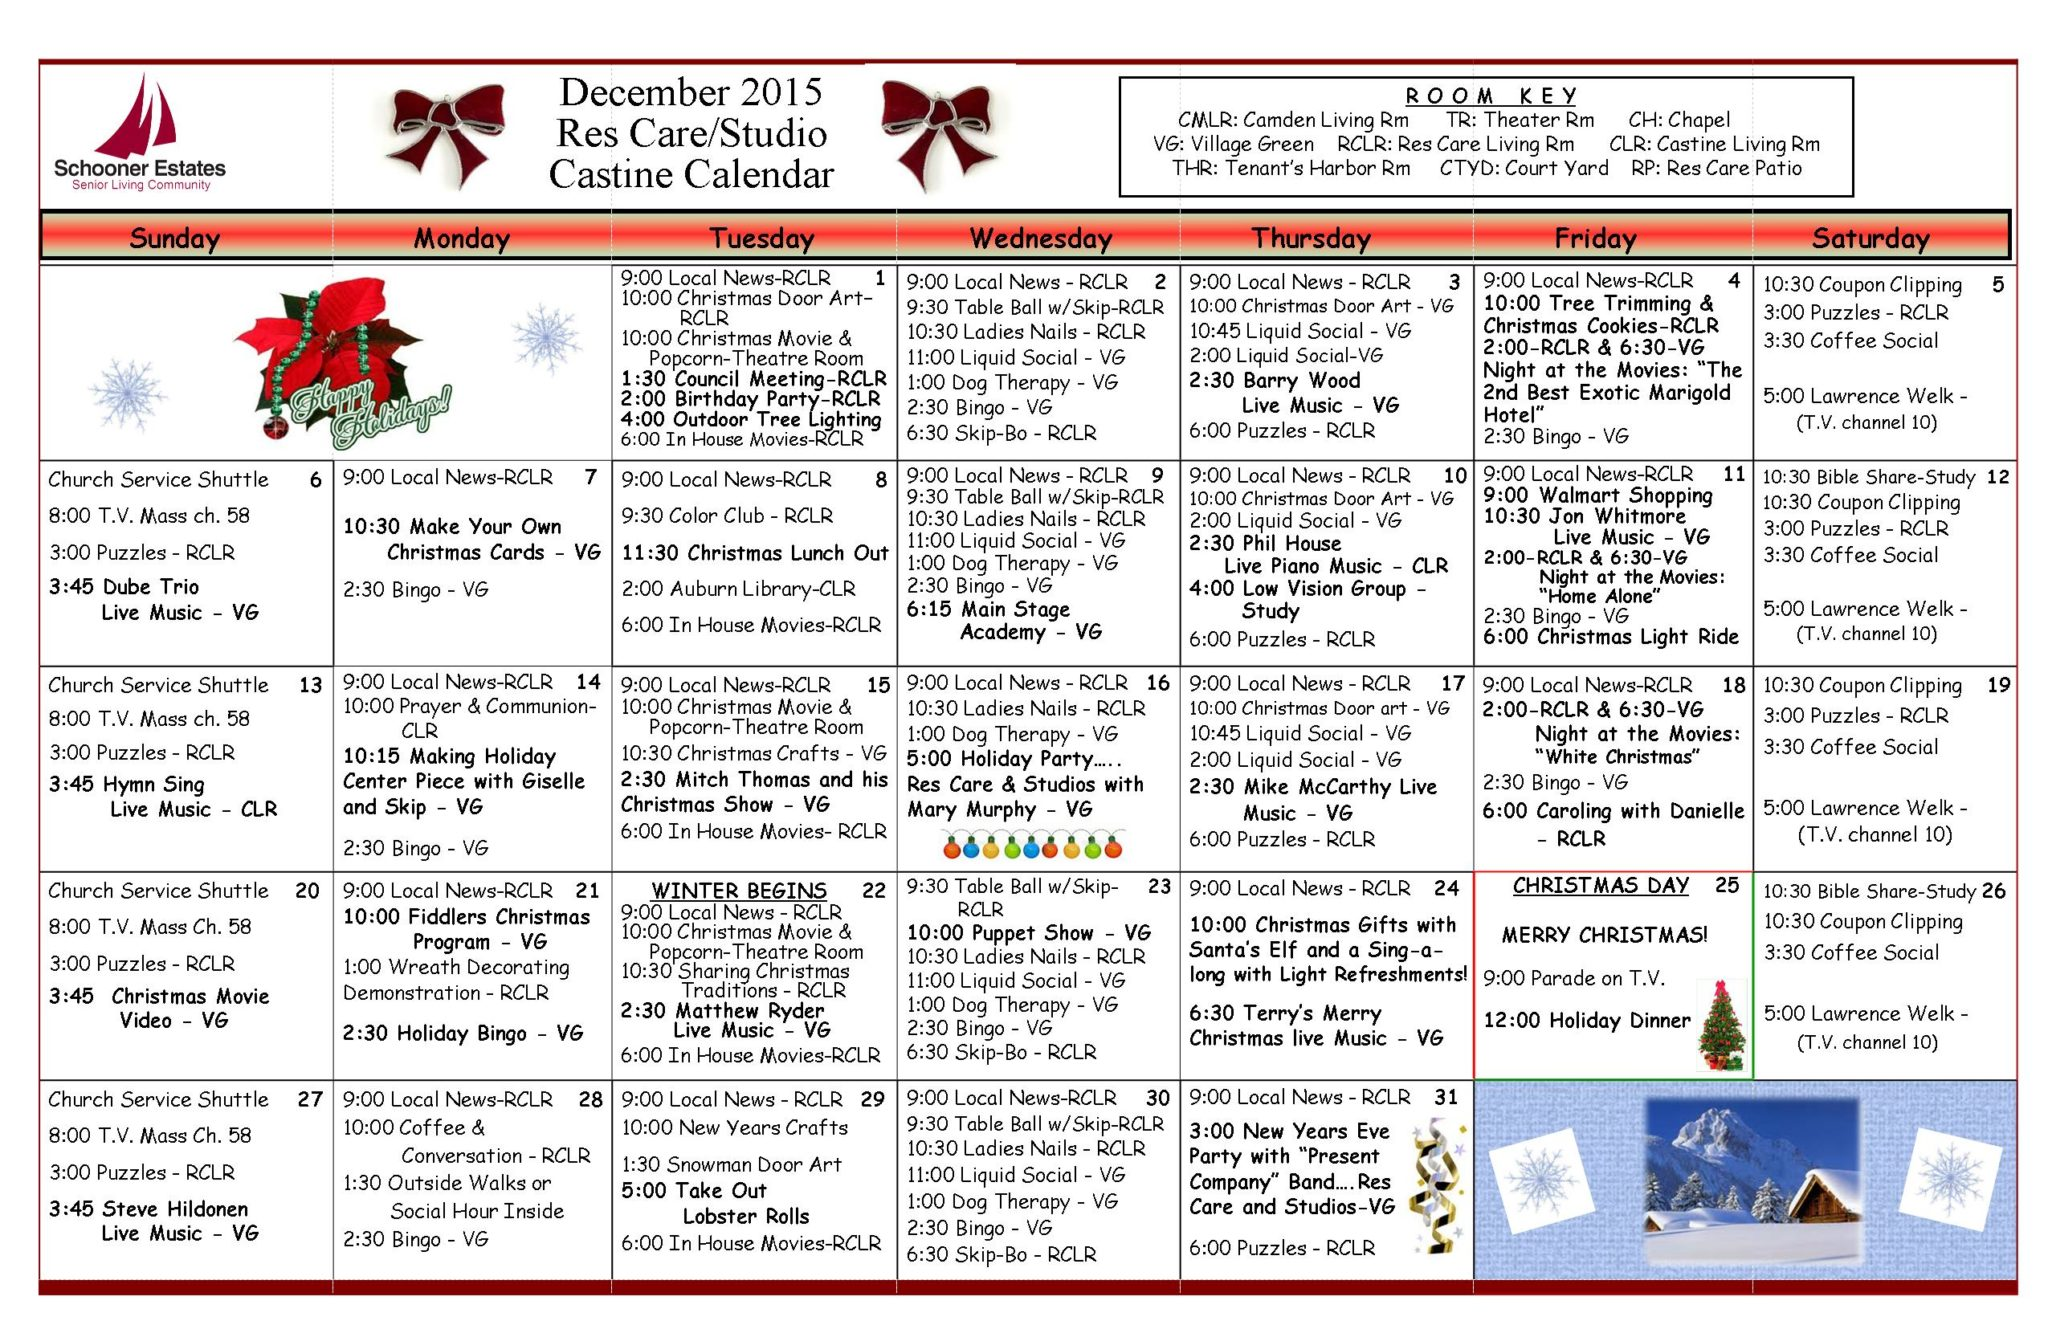 December 2015 Assisted Living and Residential Care Activity Calendar